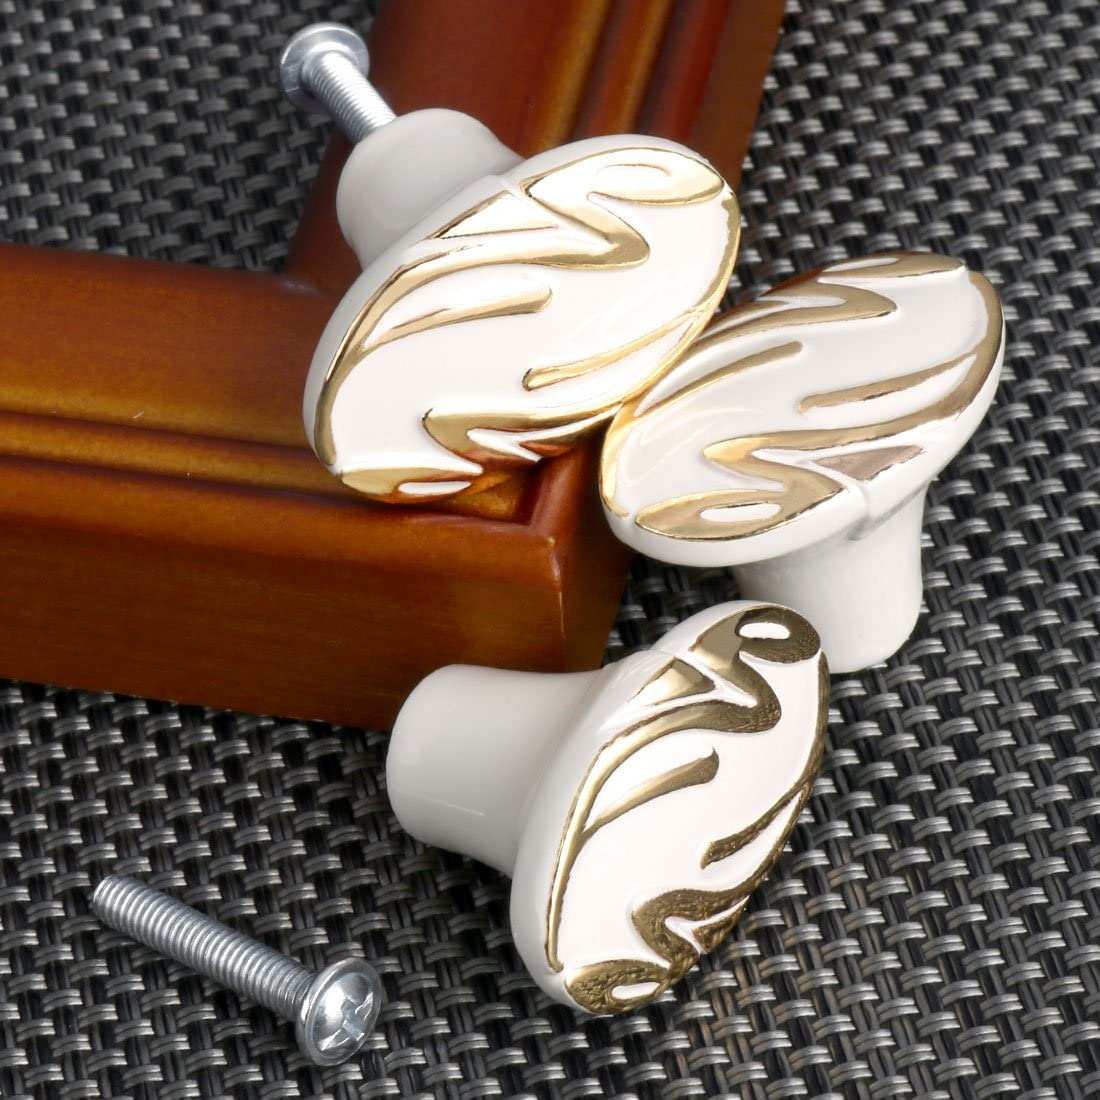 uxcell Single Modern Simple Gold Tone Style Metal Knob Handle Furniture Door Cabinet Hardware Wardrobe Drawer Pull Handles Round Knobs #13 White with Gold Lines